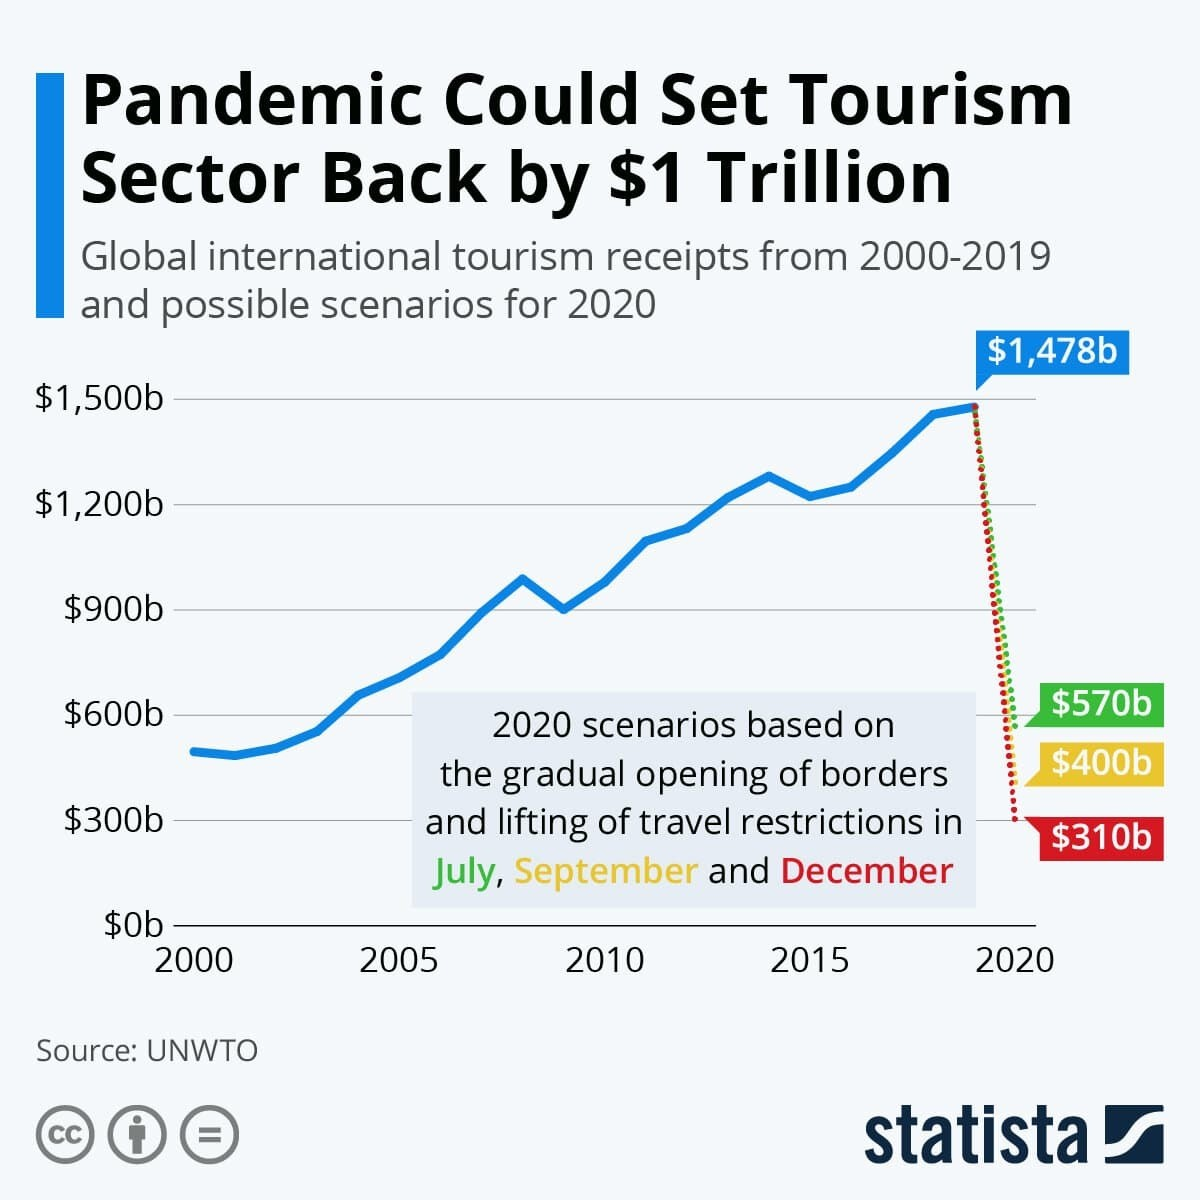 Pandemic Could Set Tourism Sector Back by $1 Trillion